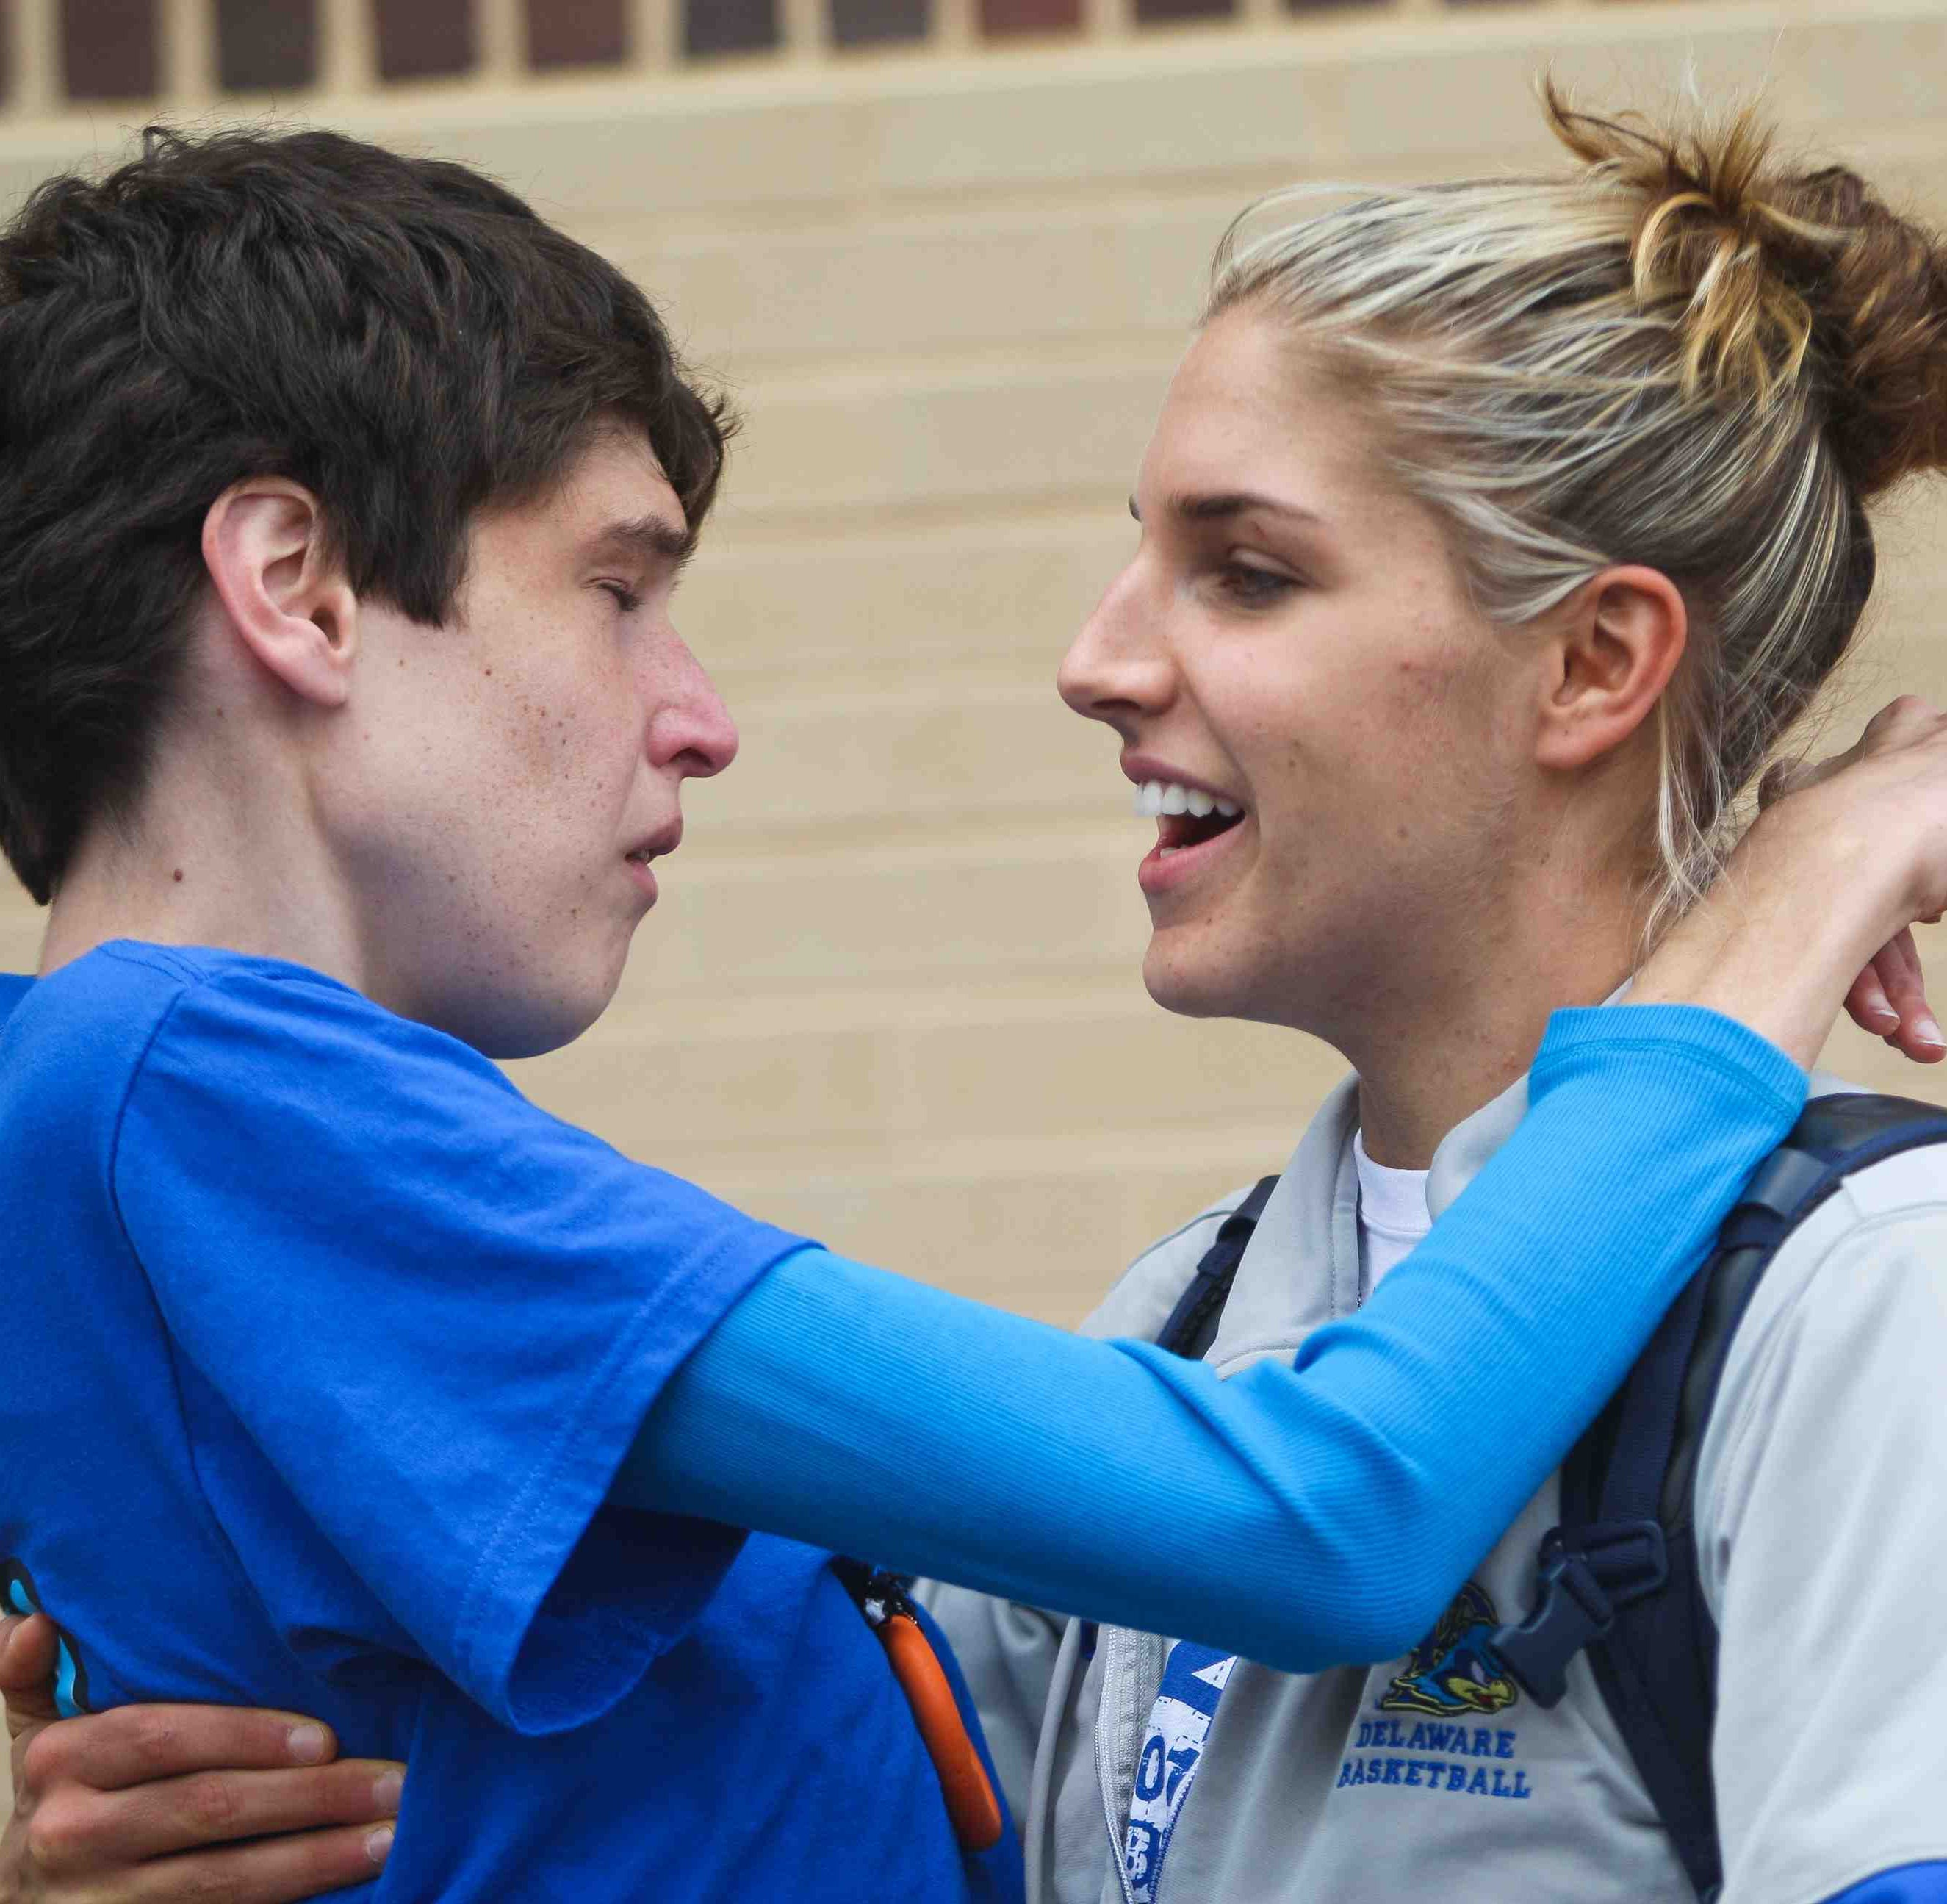 Elena Delle Donne on becoming sister Lizzie's caretaker: 'She'll be with me'